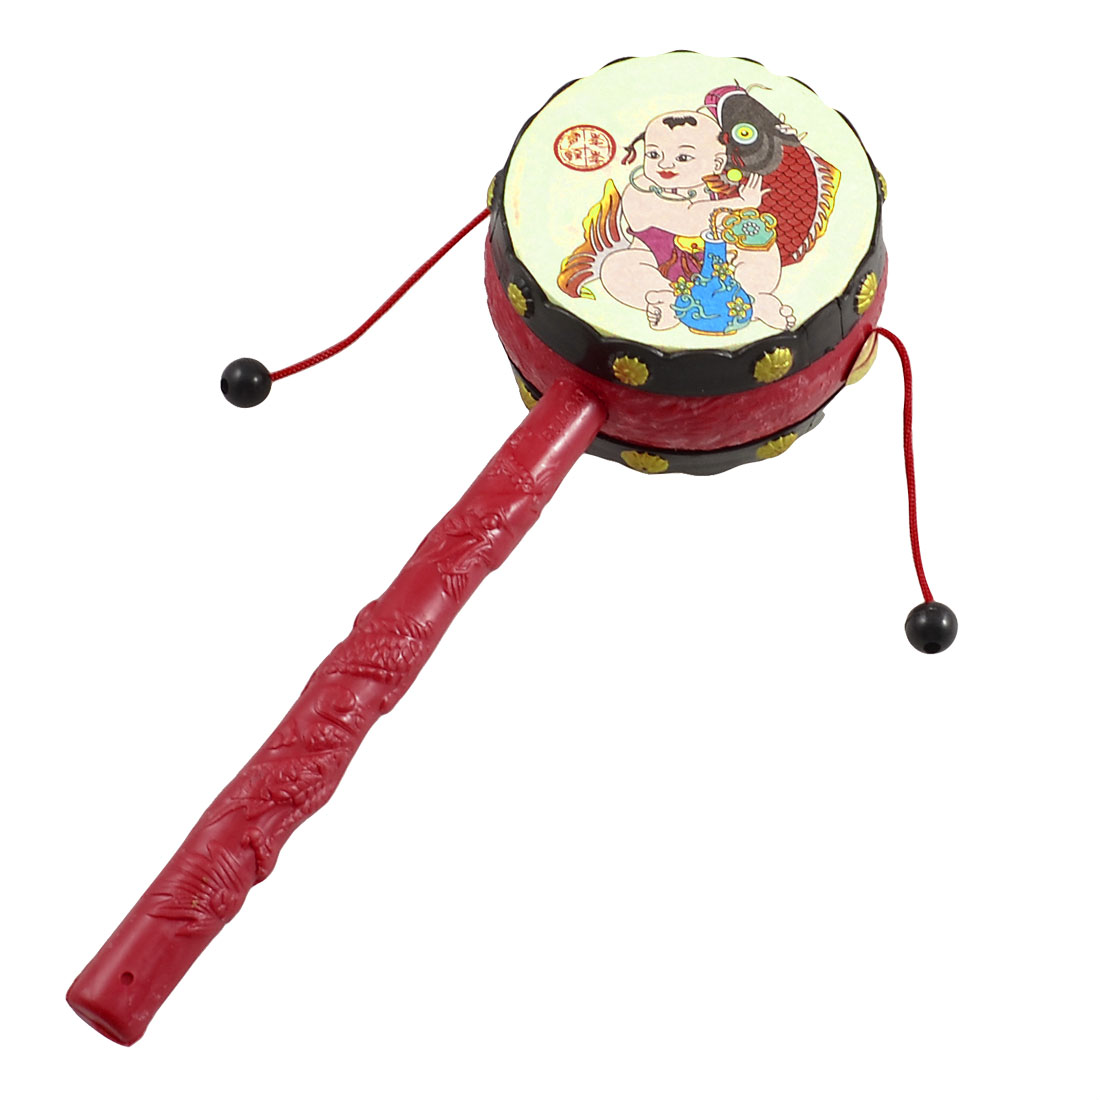 Textured Handle Auspicious Picture Print Rattle Drum Toy Plaything for Baby